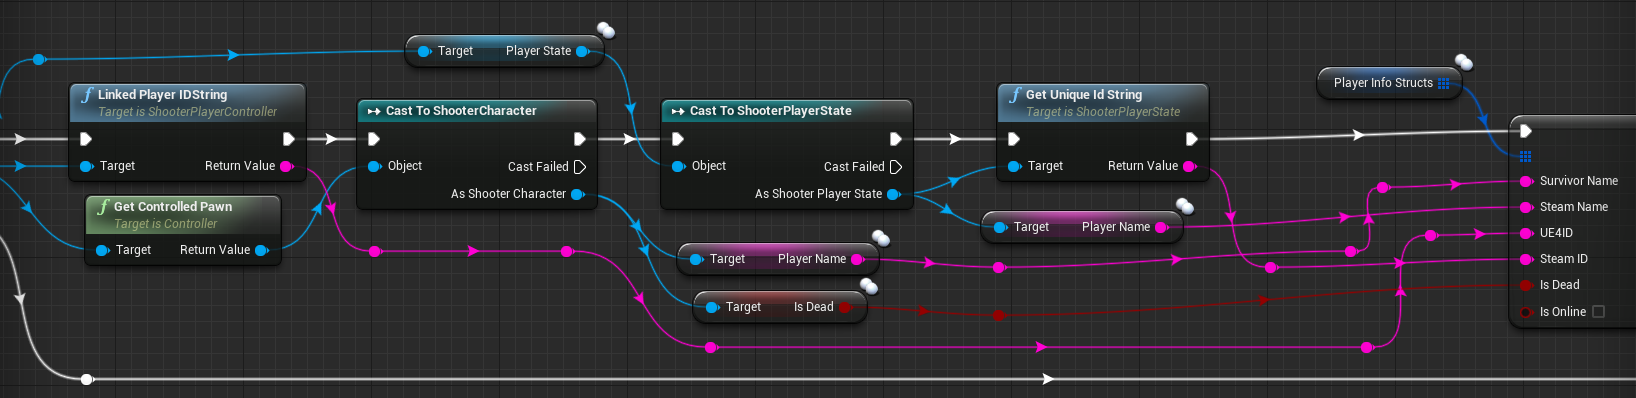 Targeting other players with blueprints unreal engine forums comment malvernweather Choice Image